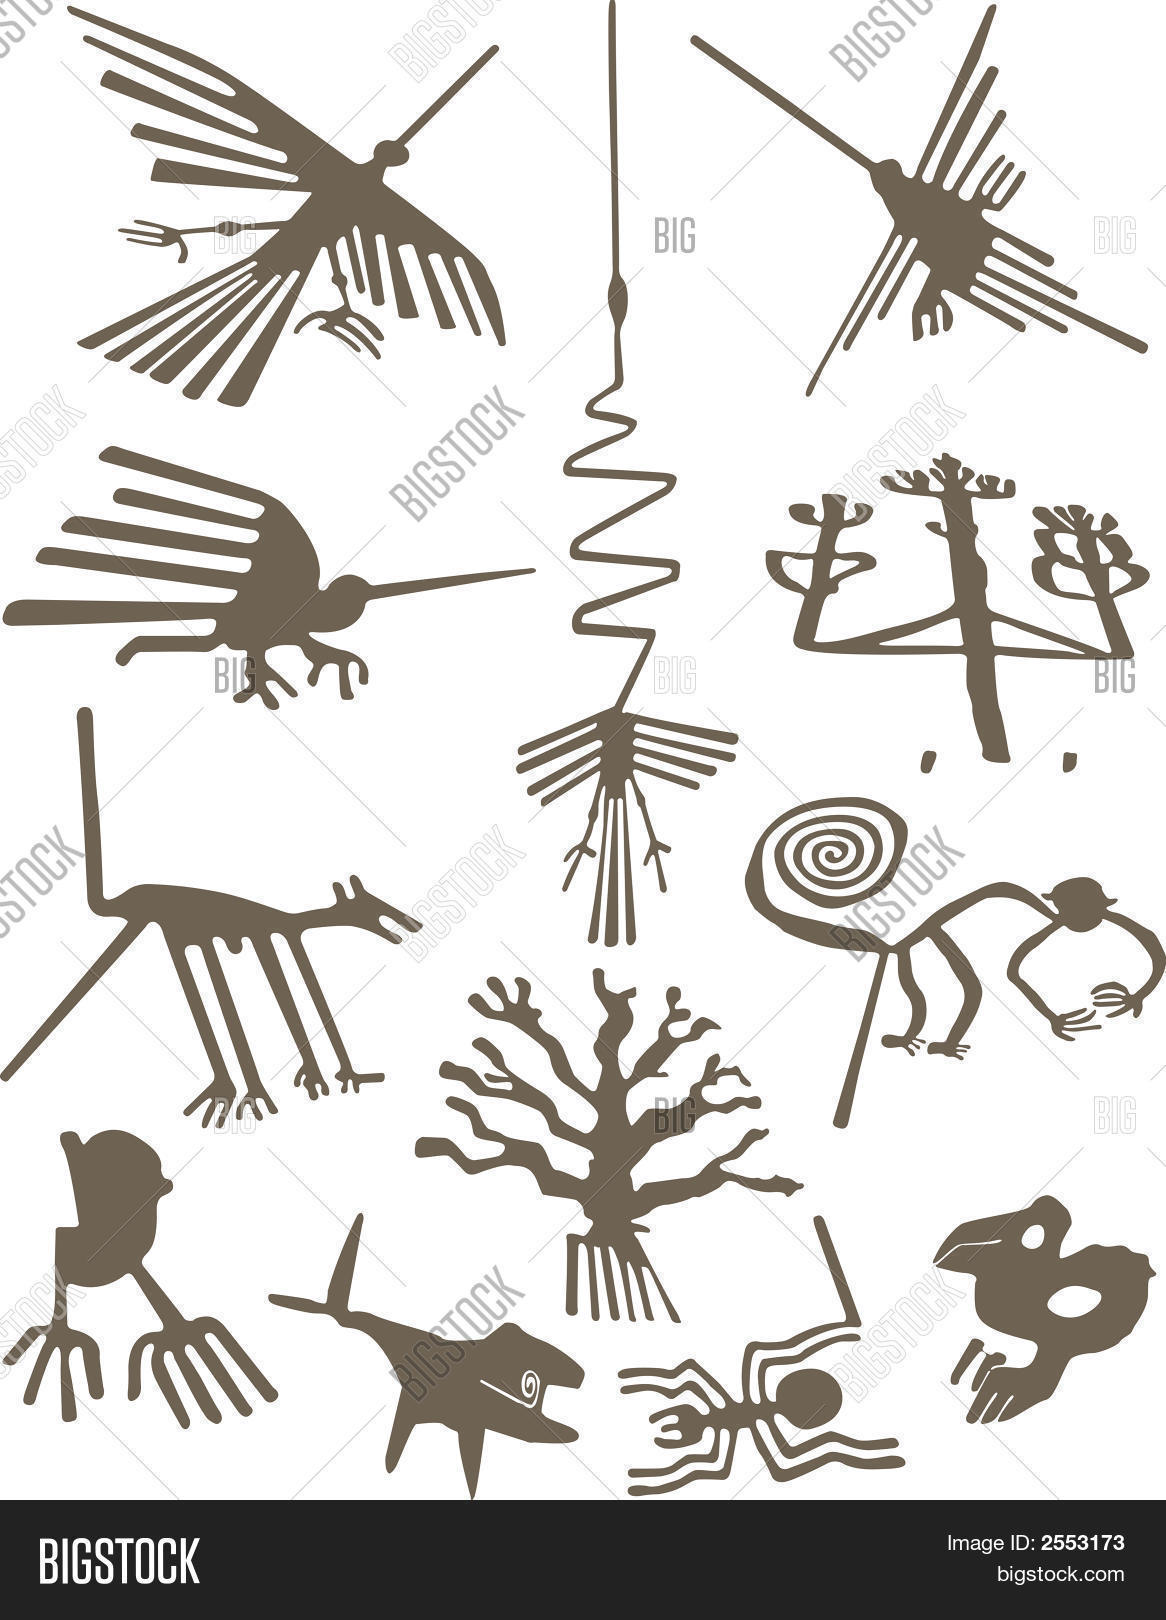 Nazca Lines Vectors Wiring Diagrams Golf Jetta 2 Gtgt Symbols Used On The Vector Photo Free Trial Bigstock Rh Bigstockphoto Com